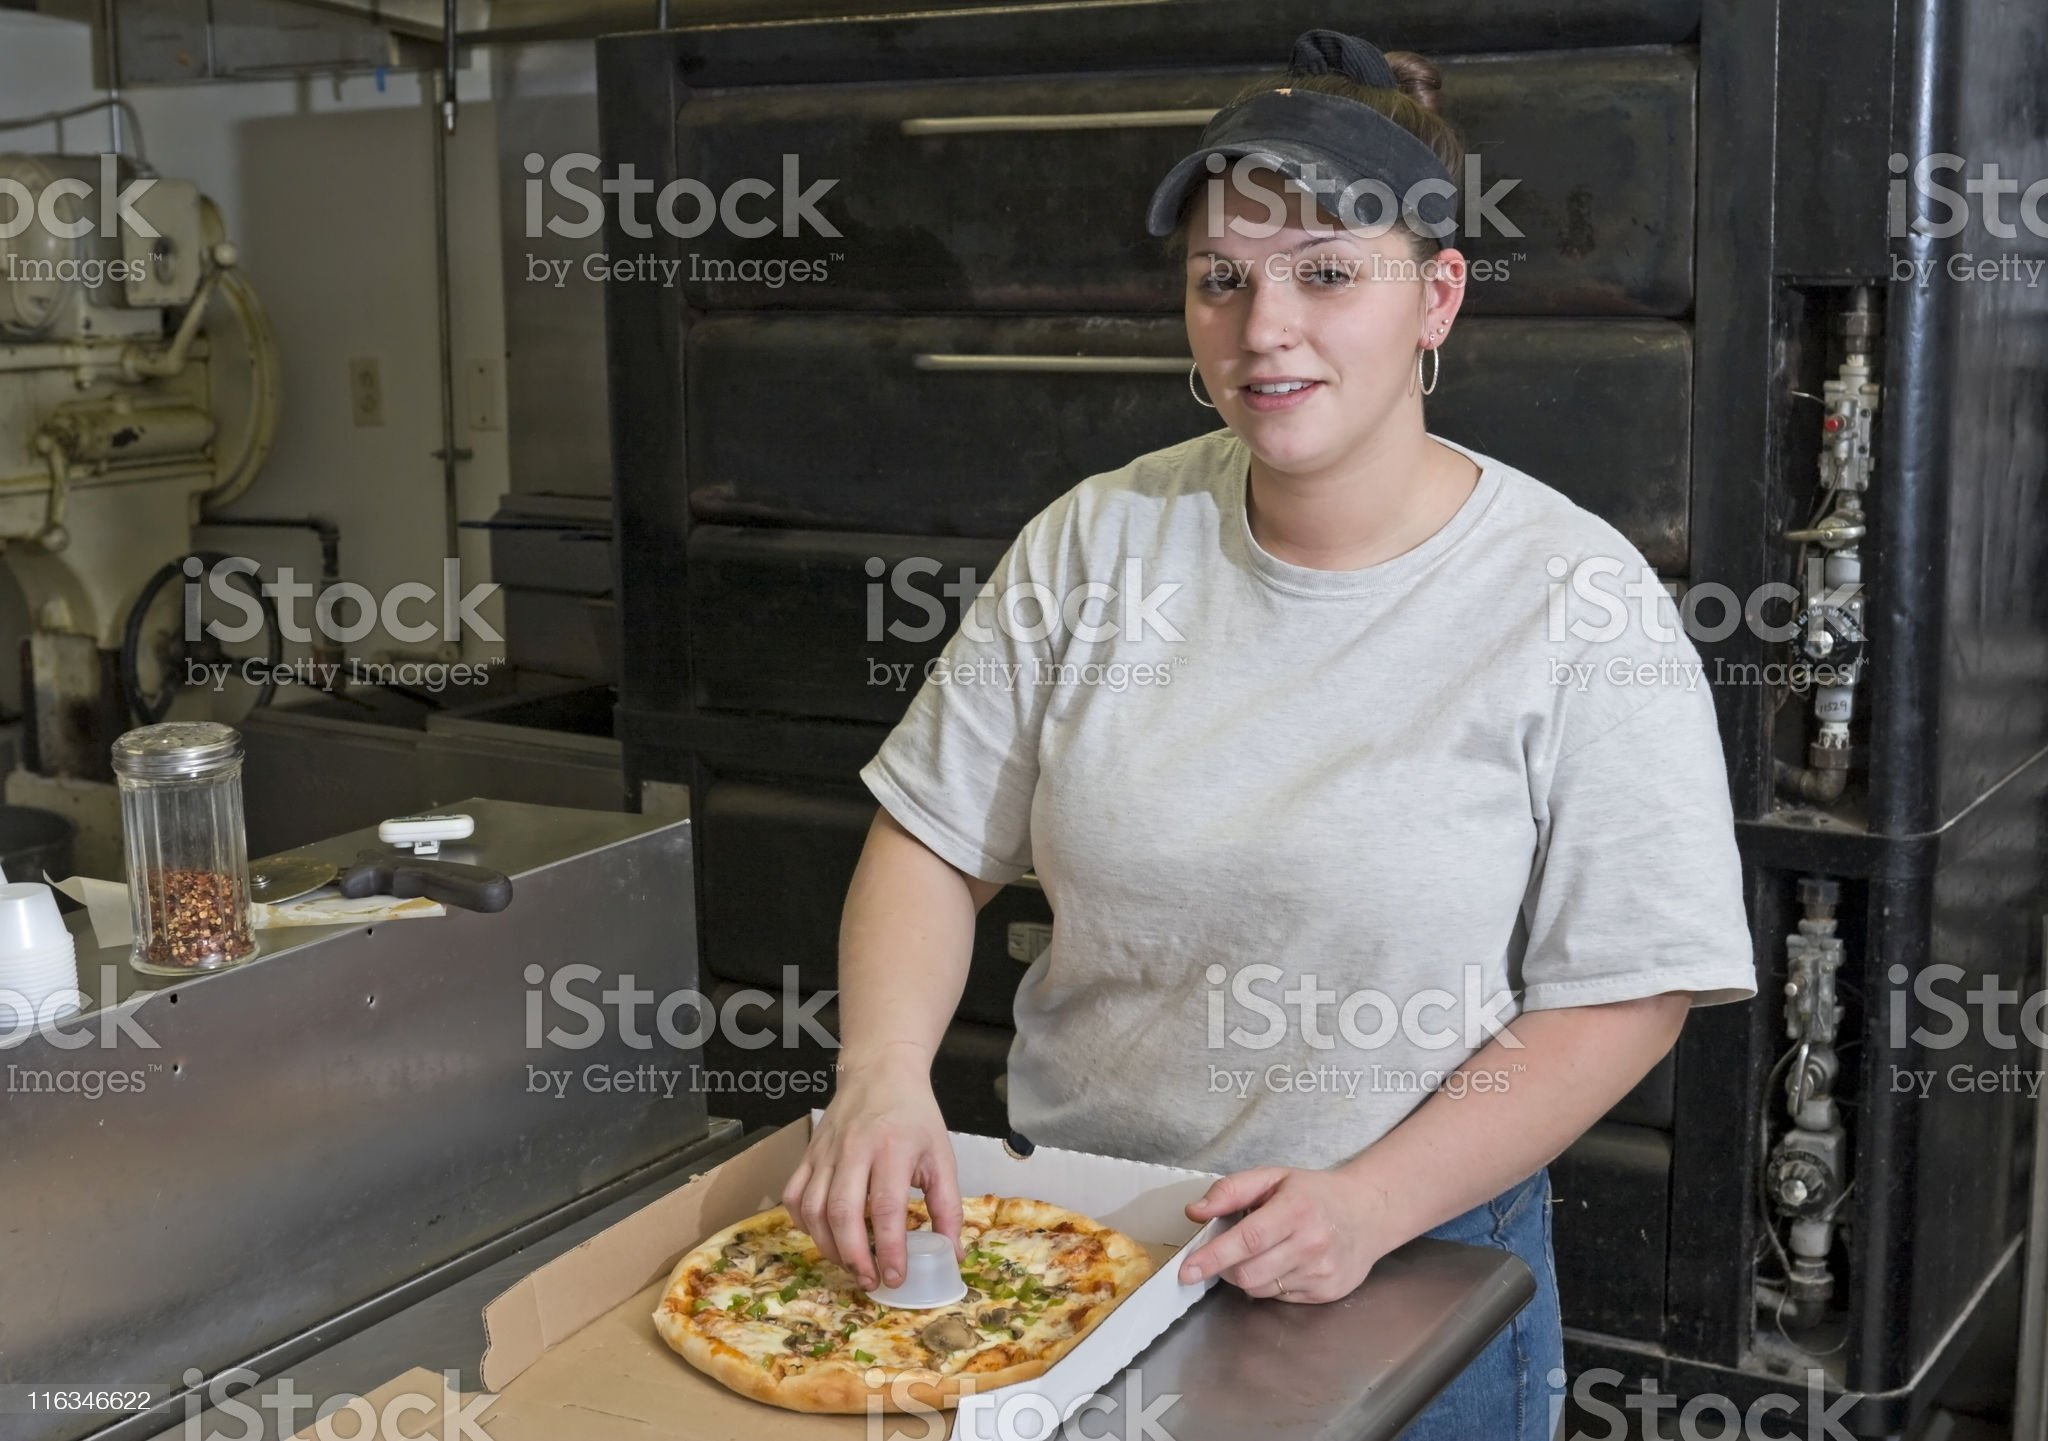 Manager Putting Pizza in a Box. royalty-free stock photo